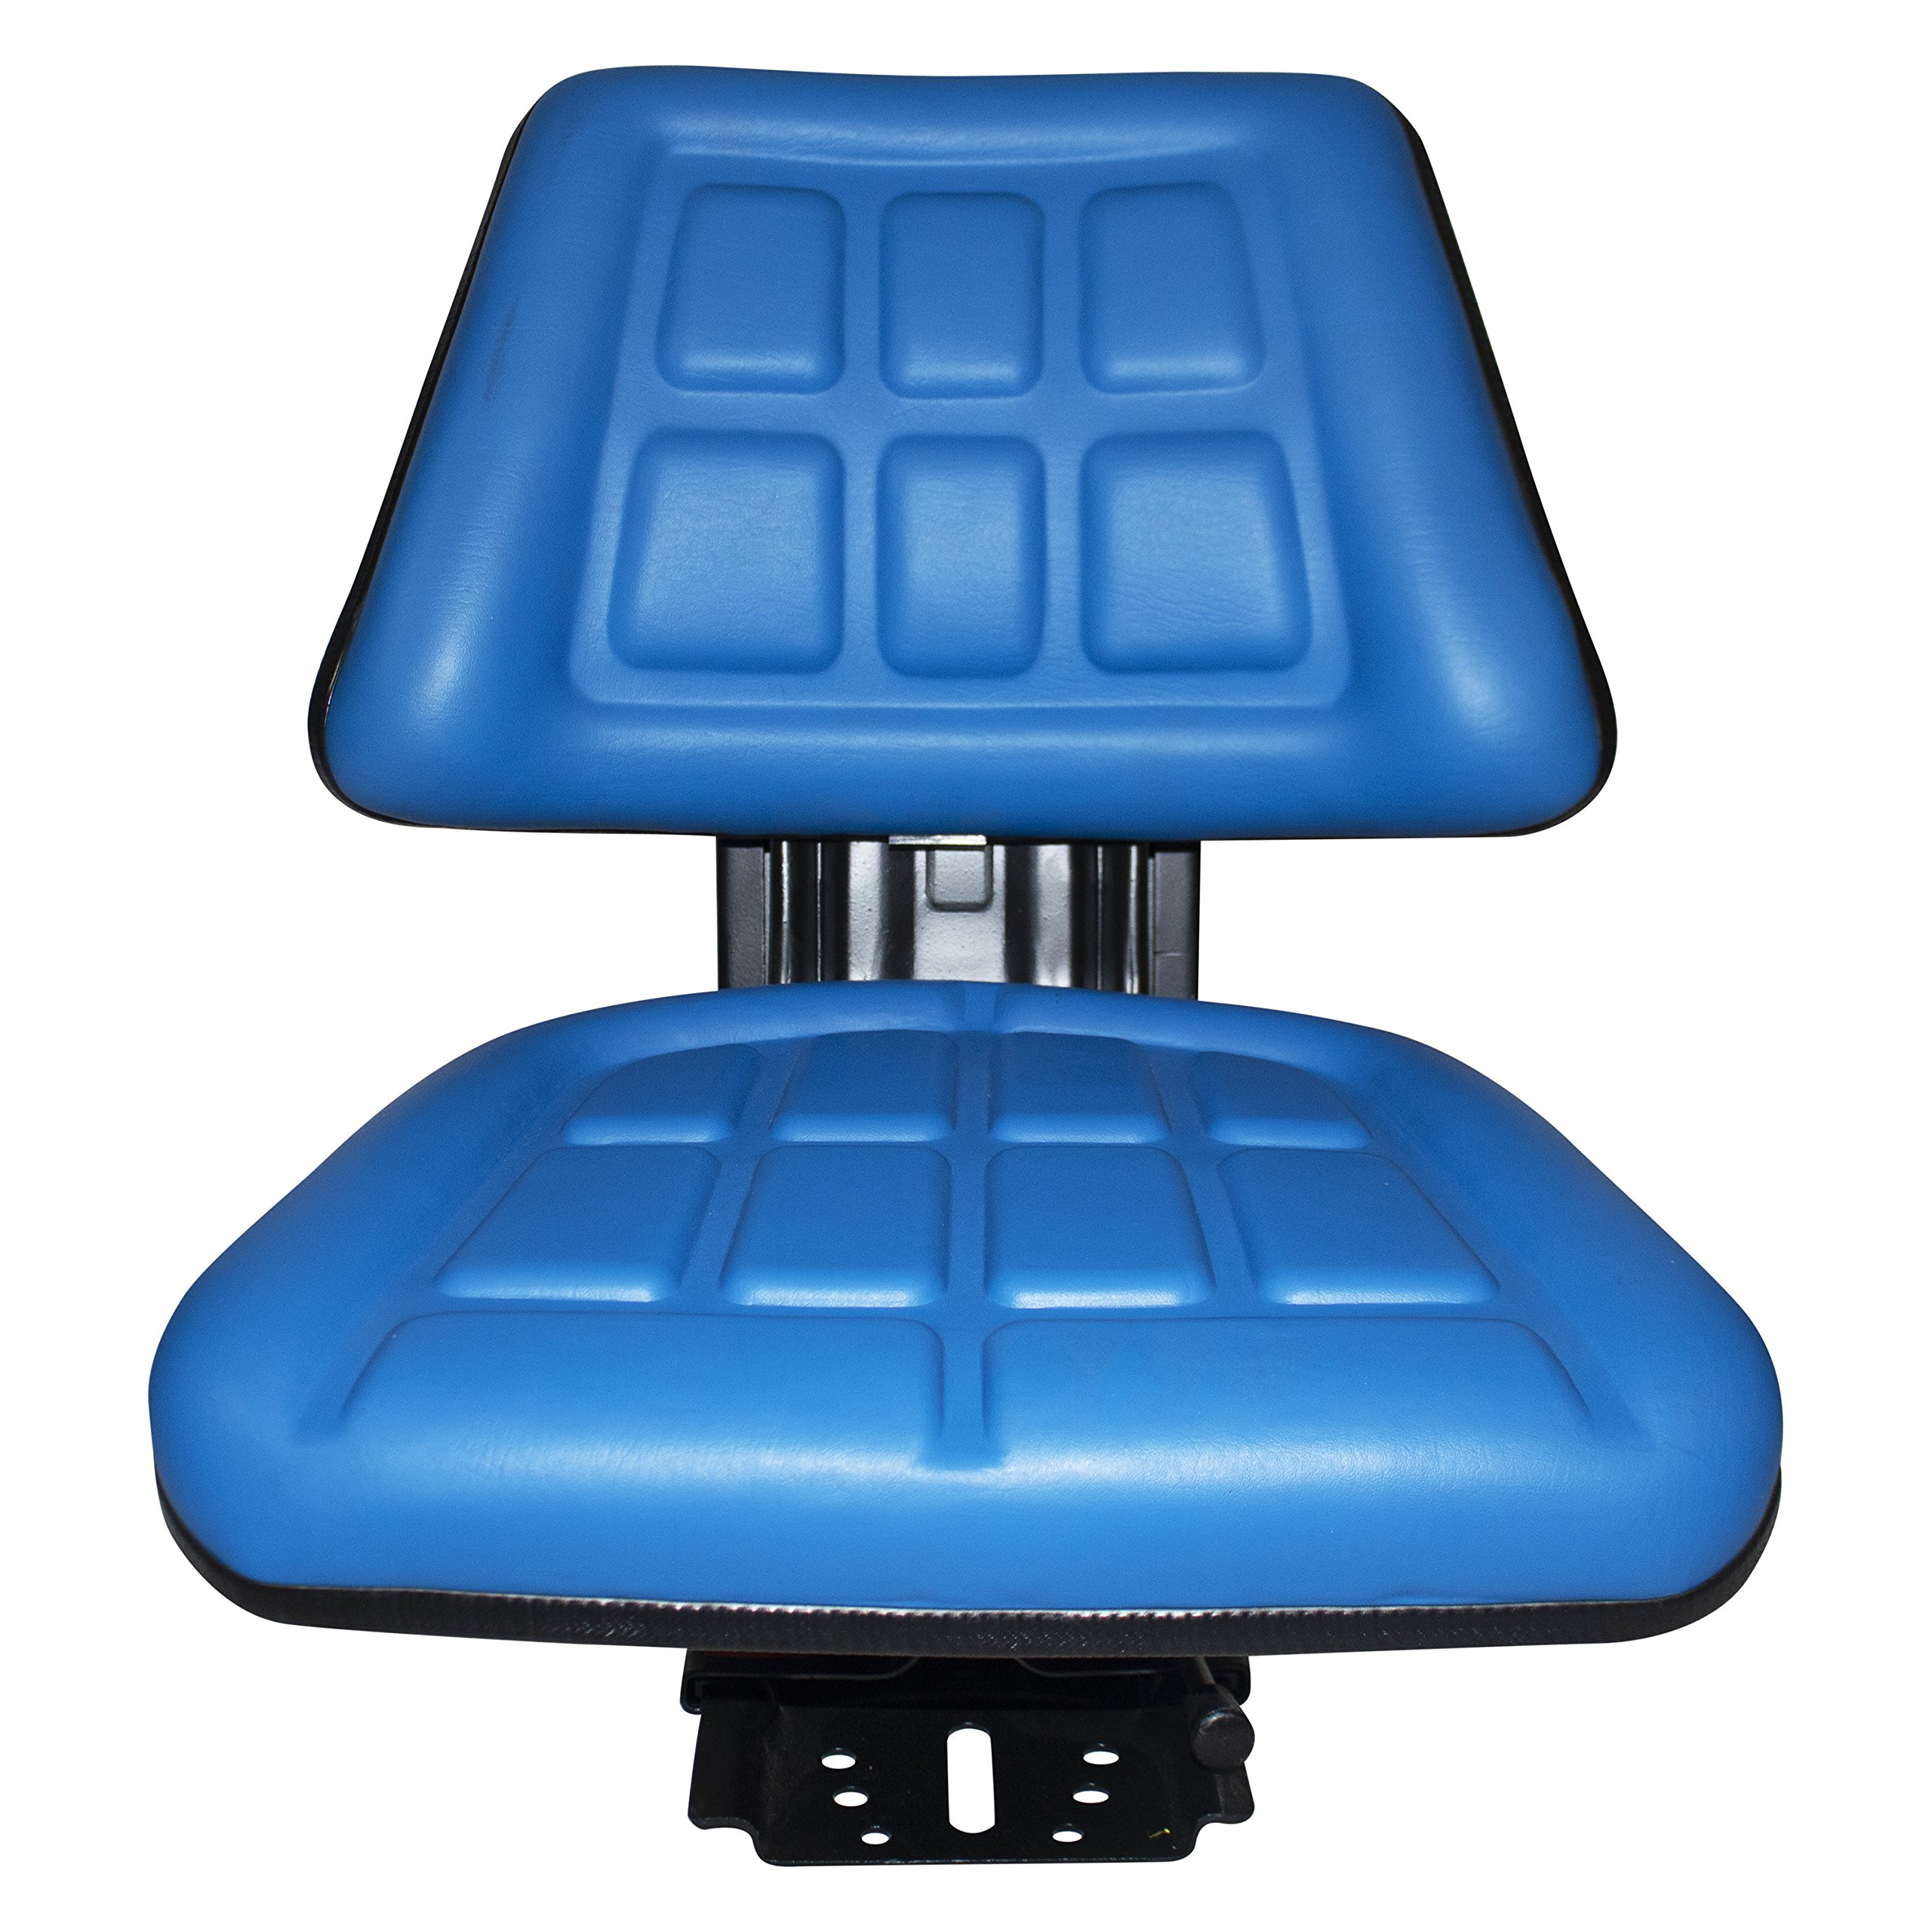 Blue TRAC SEATS Brand TRIBACK Style Universal Tractor Suspension SEAT with TILT FITS Ford/New Holland 3000 3010 3300 3330 3400 3600 3610 (Same Day Shipping - Delivers in 1-4 Business Days) by TRAC SEATS